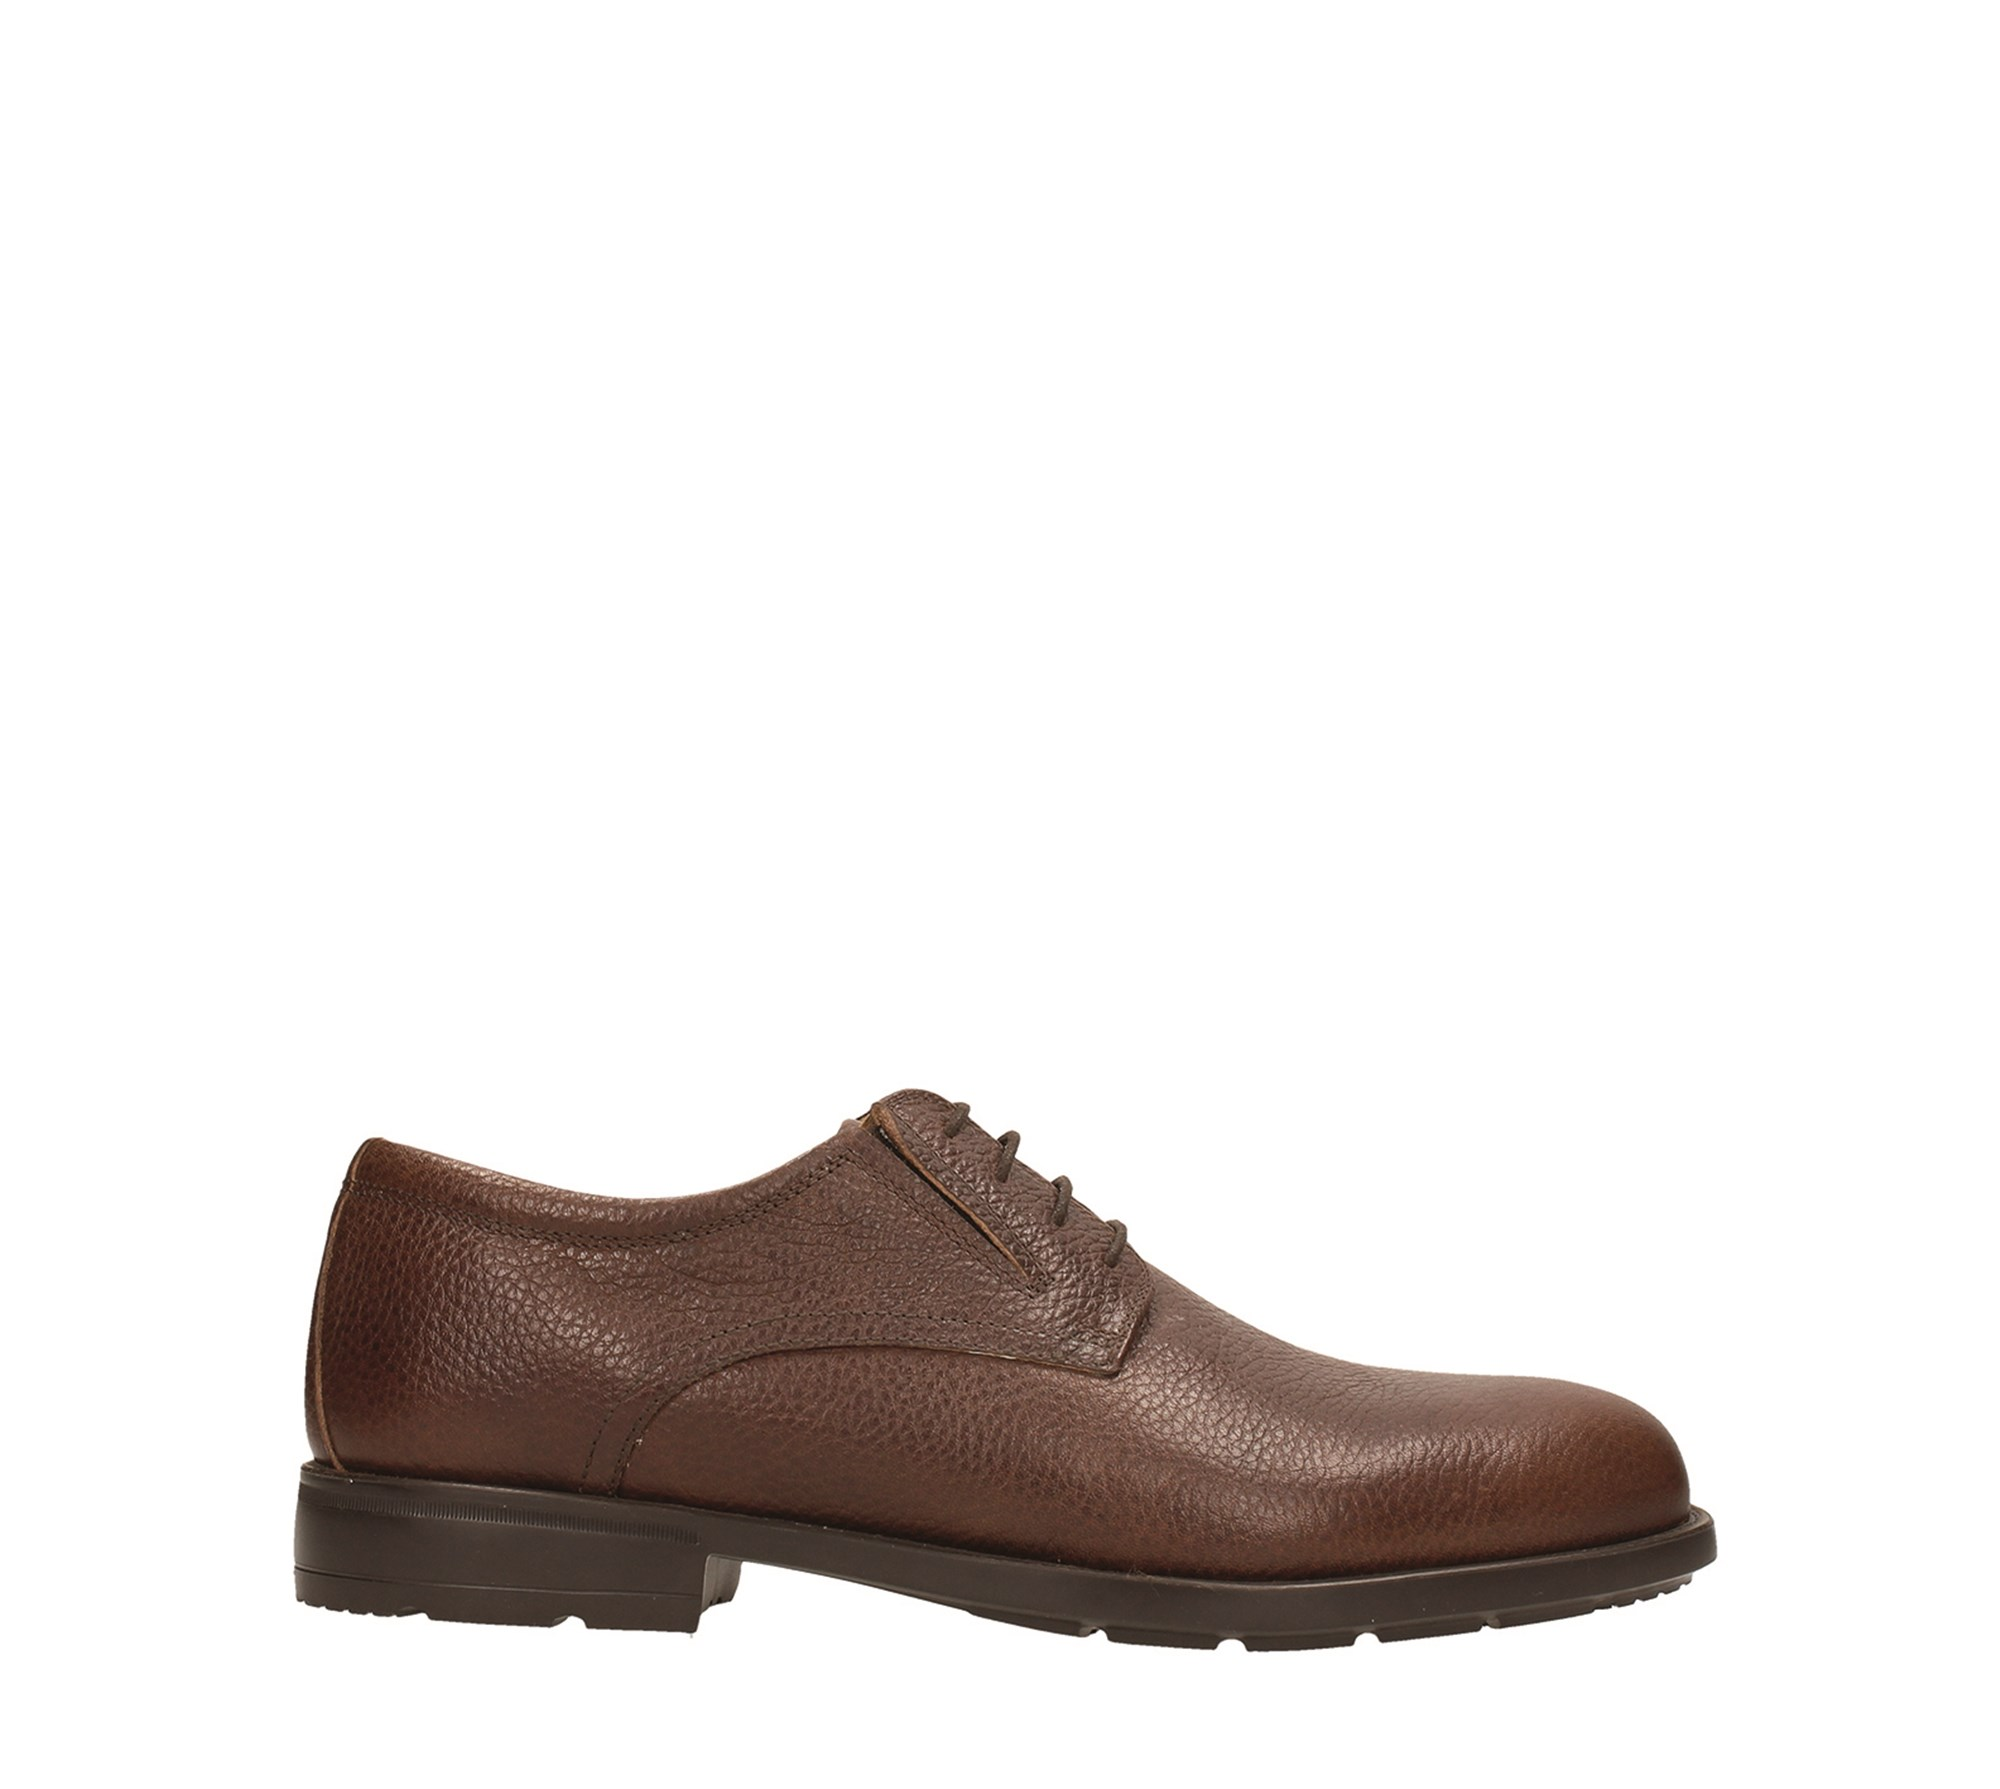 Tata Italia Shoes Man Derby 120213